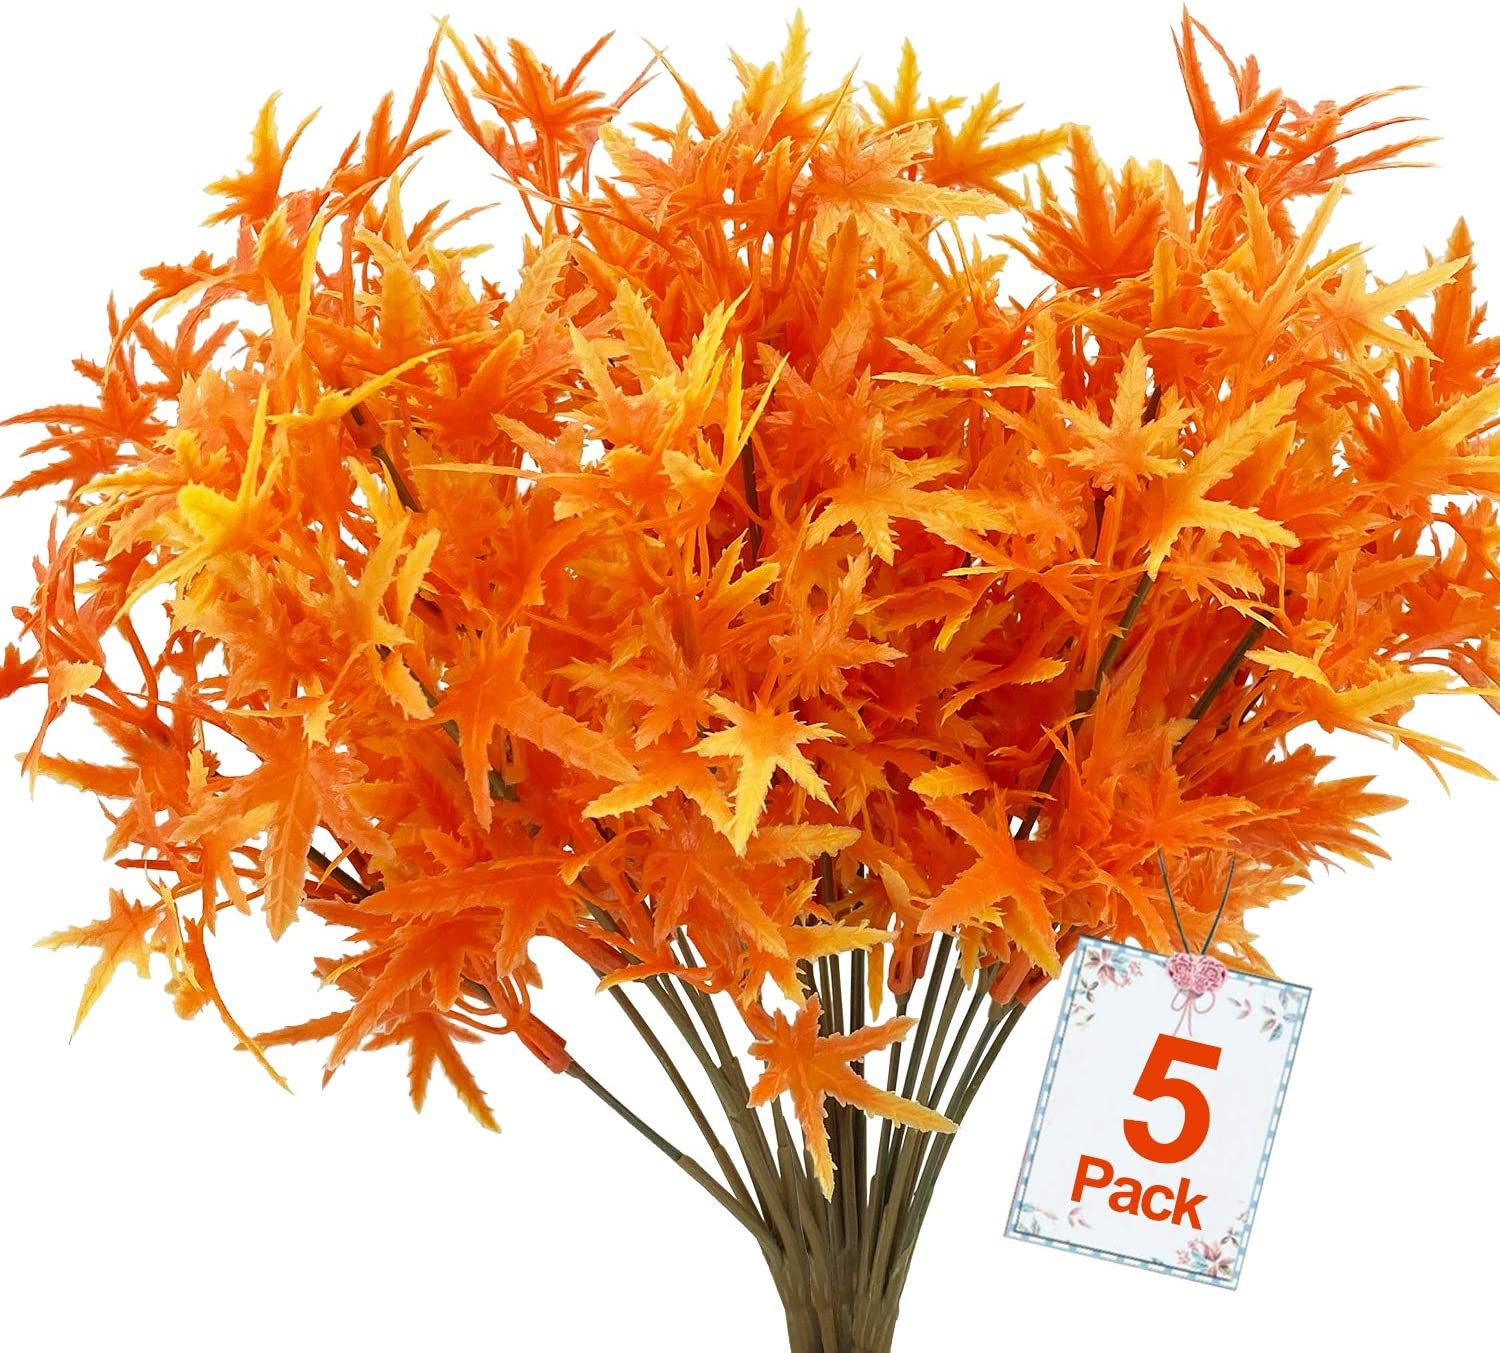 5PCS Artificial Fall Maple Leaves Branches Decoration,Faux Plastic Thanksgiving Autumn Fall Leaves Stem Greenery Shrubs Plants Indoor Outdoor Home Fireplace Office Garden Party Table Decor (Orange)